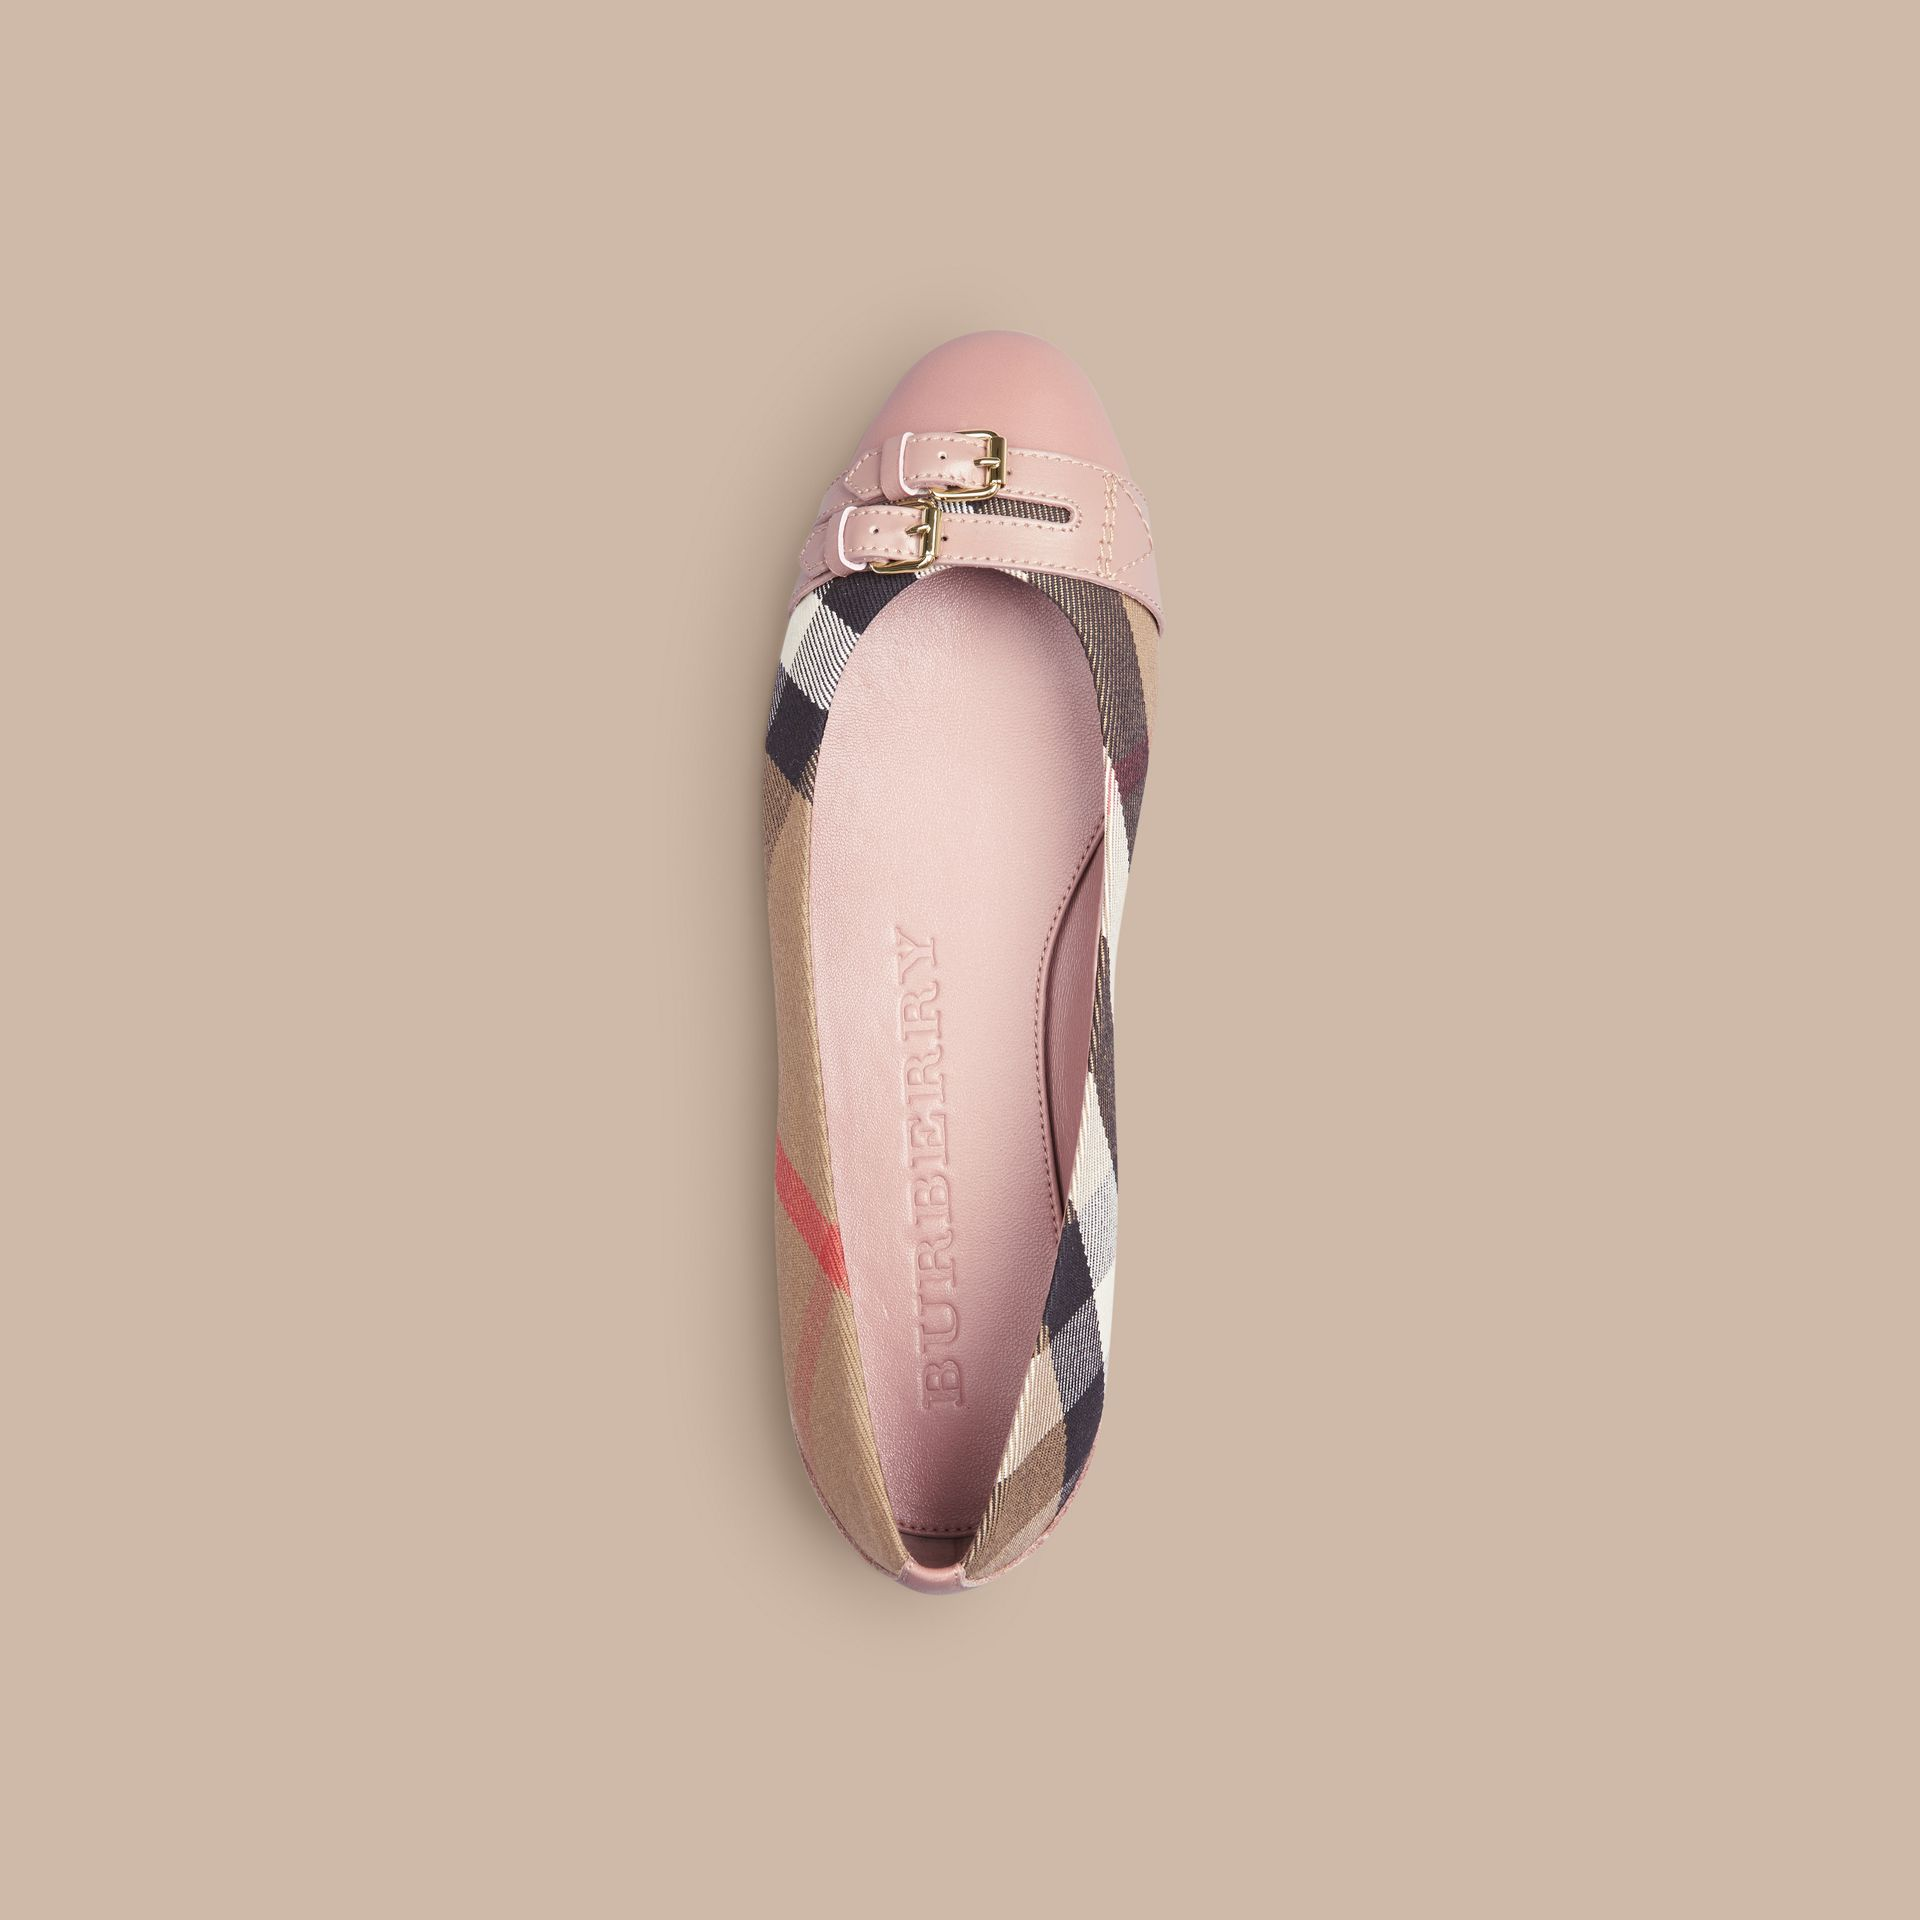 Ballerines à motif House check avec boucle (Nude Blush) - Femme | Burberry - photo de la galerie 3